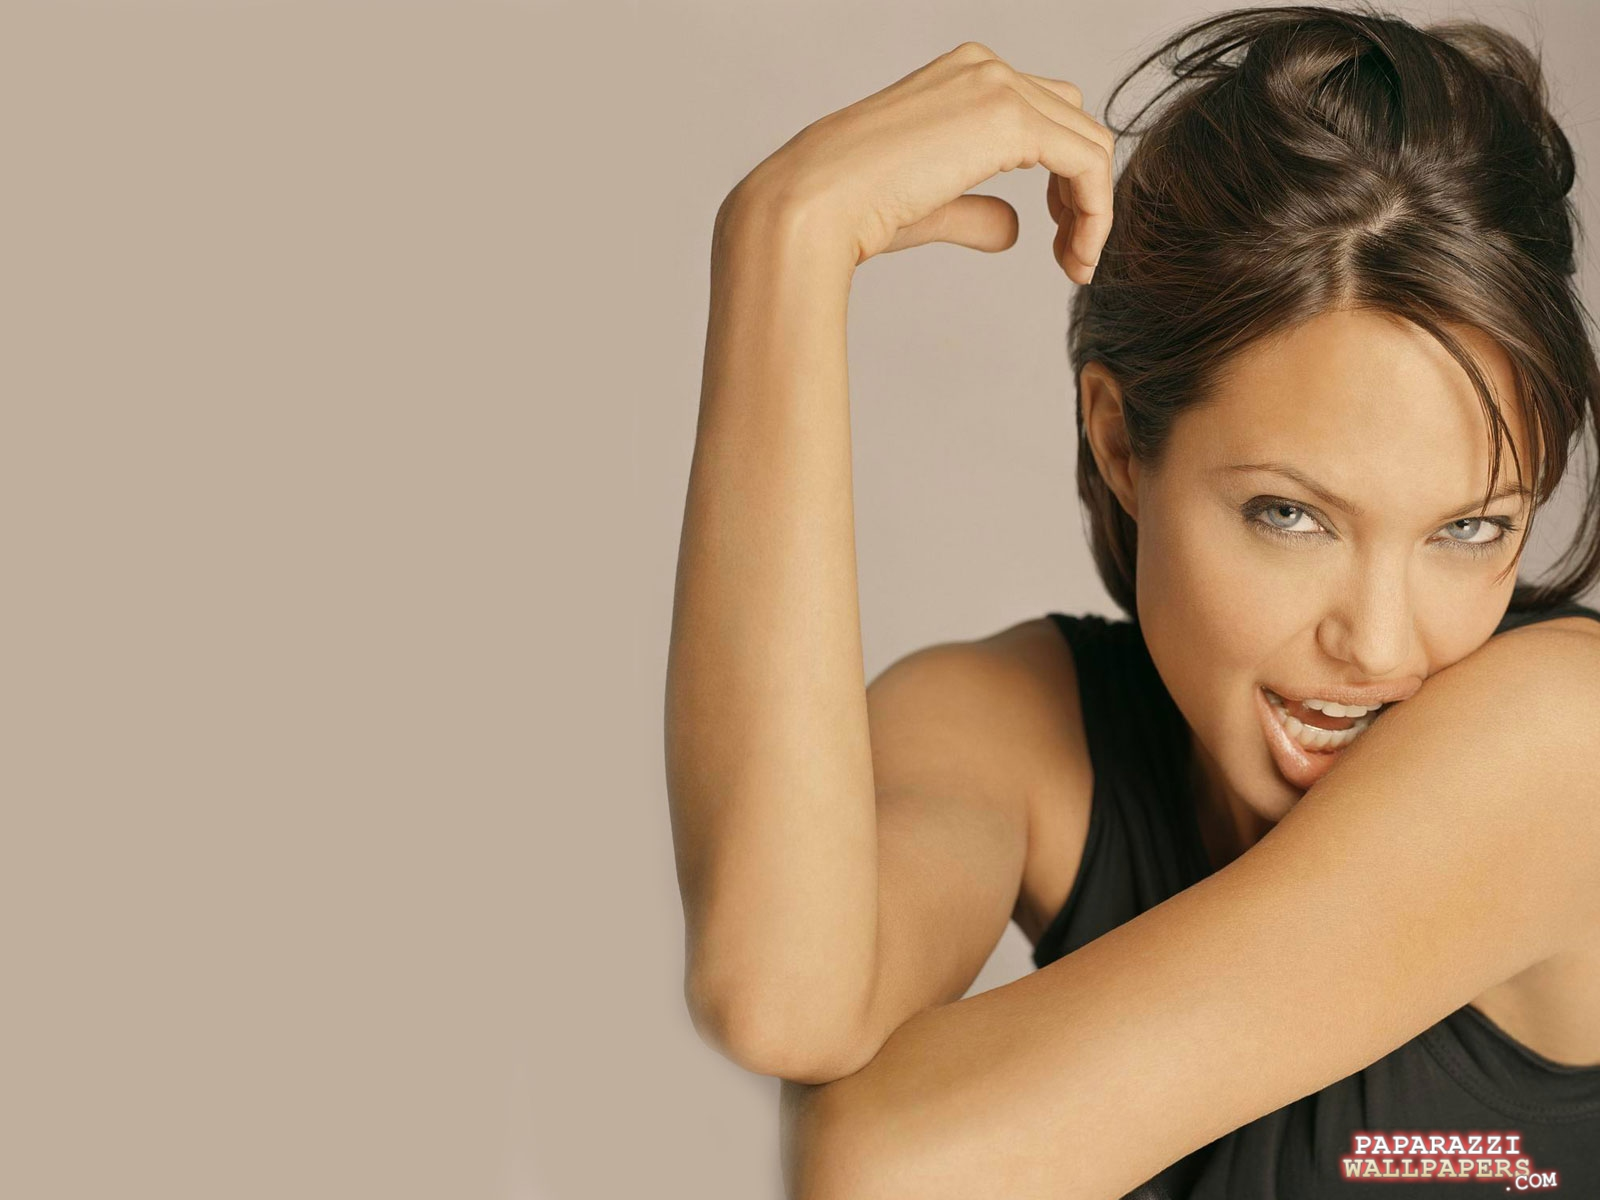 angelina jolie wallpapers 007